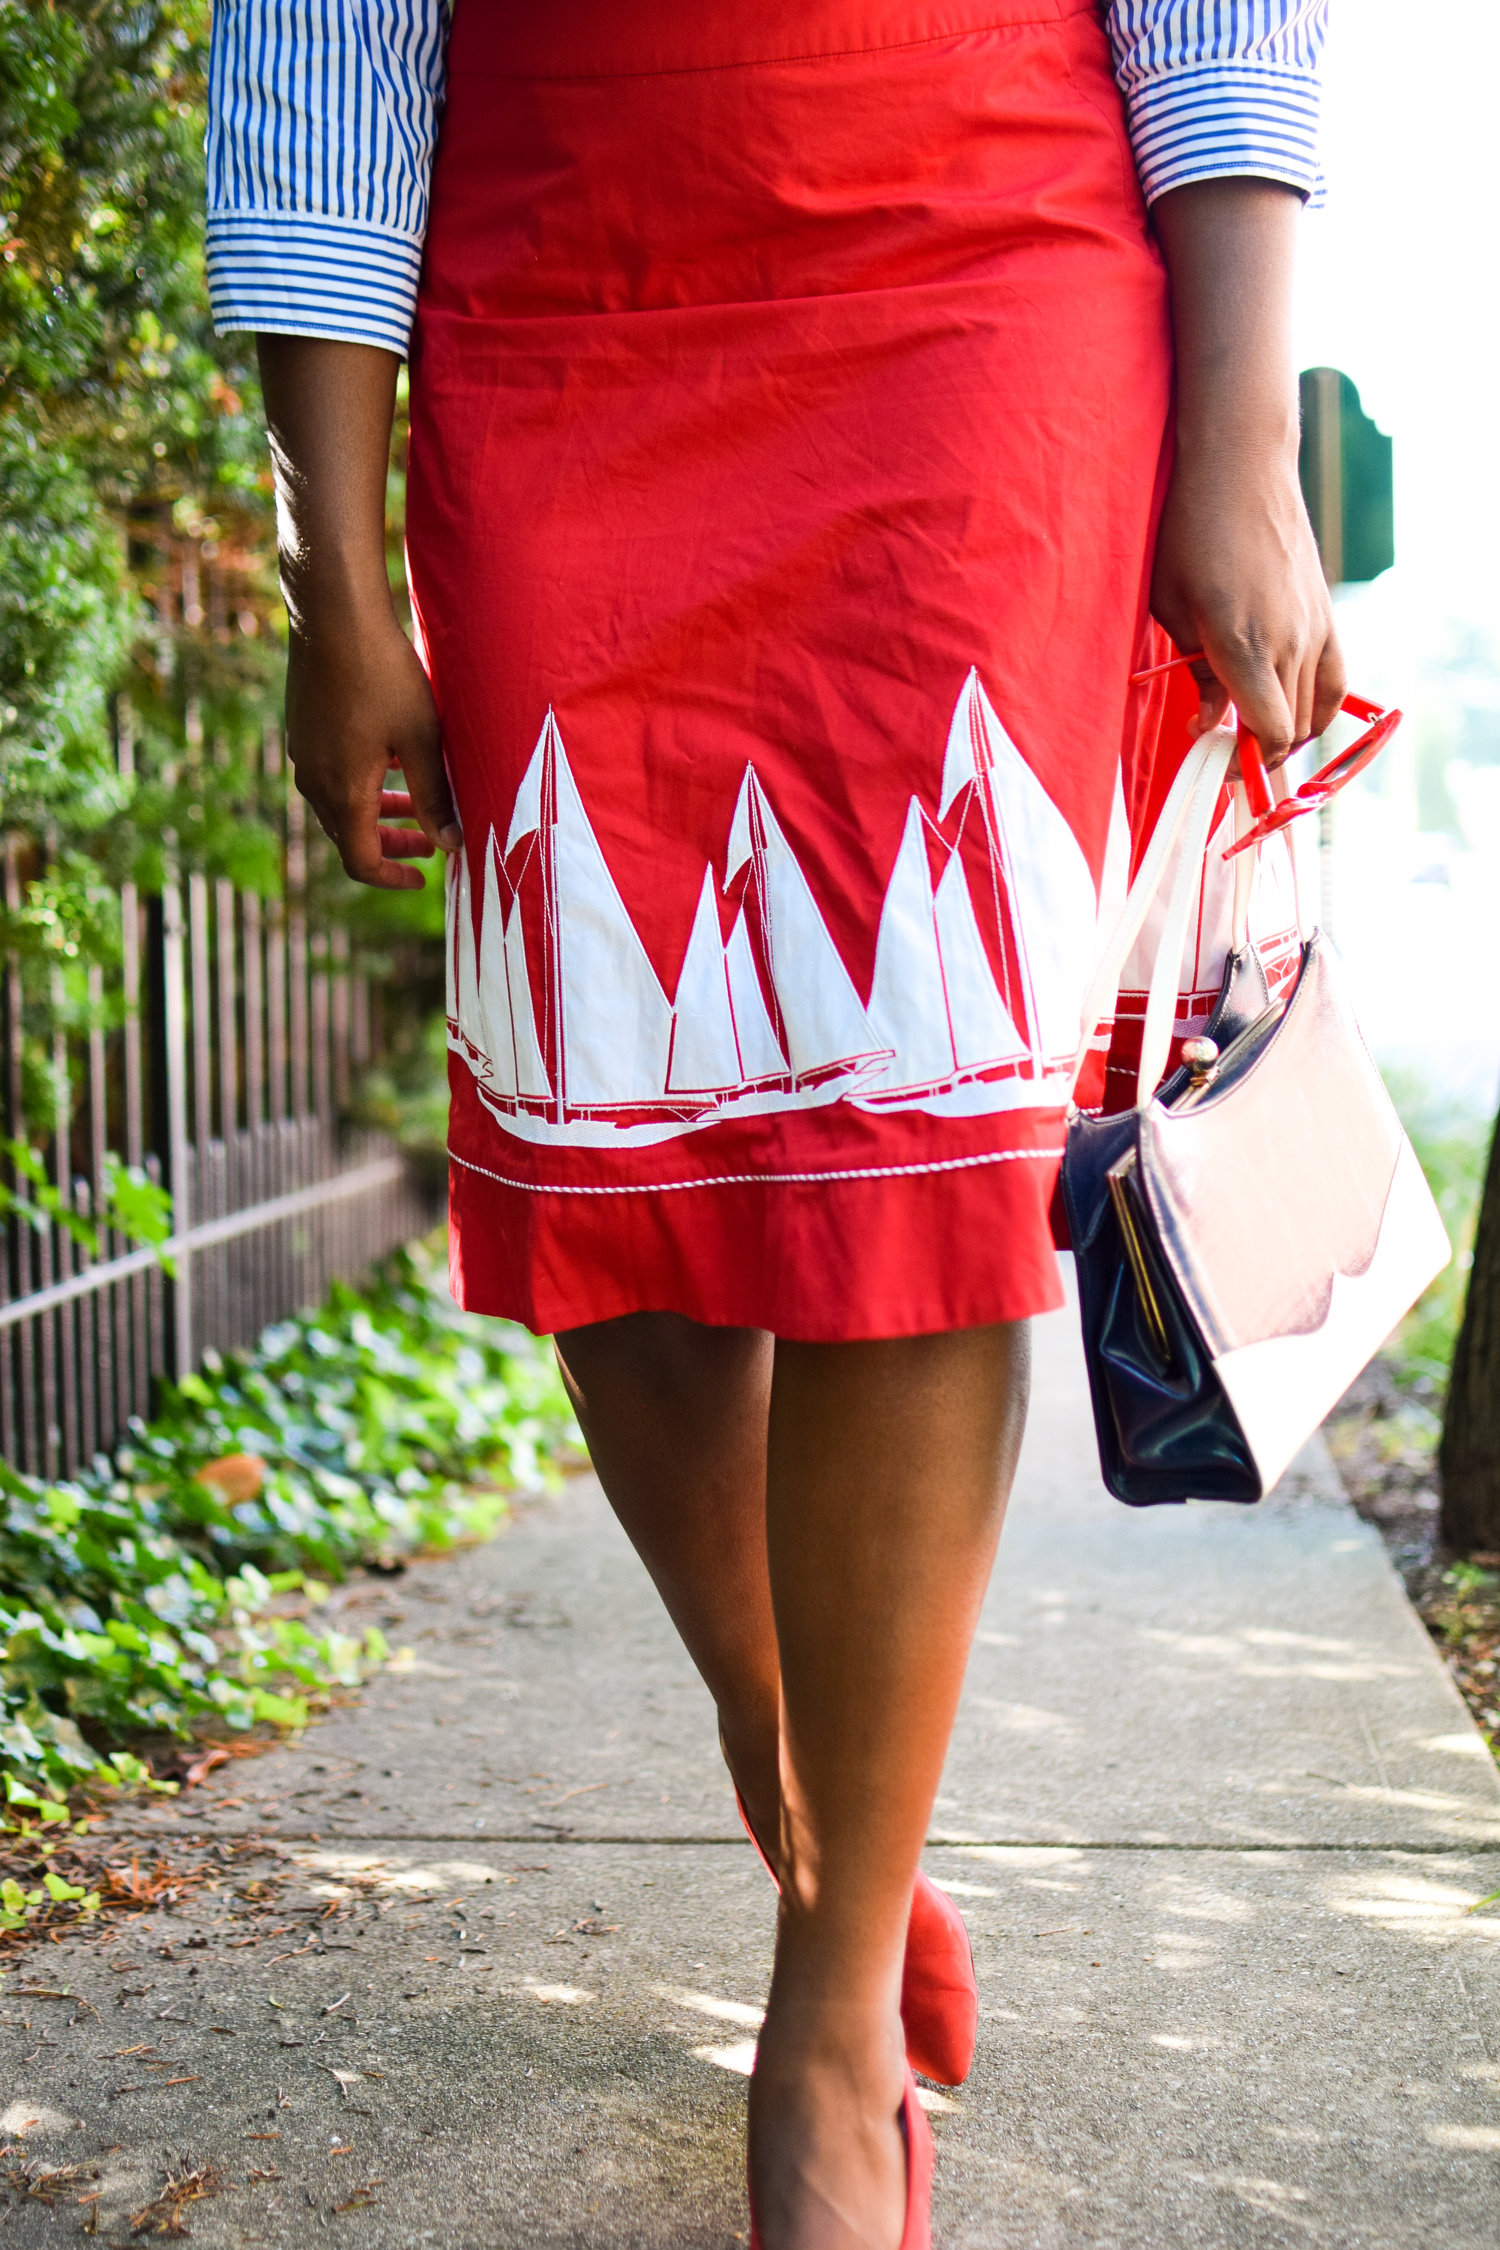 The Red and White Detailed Sailor Skirt.